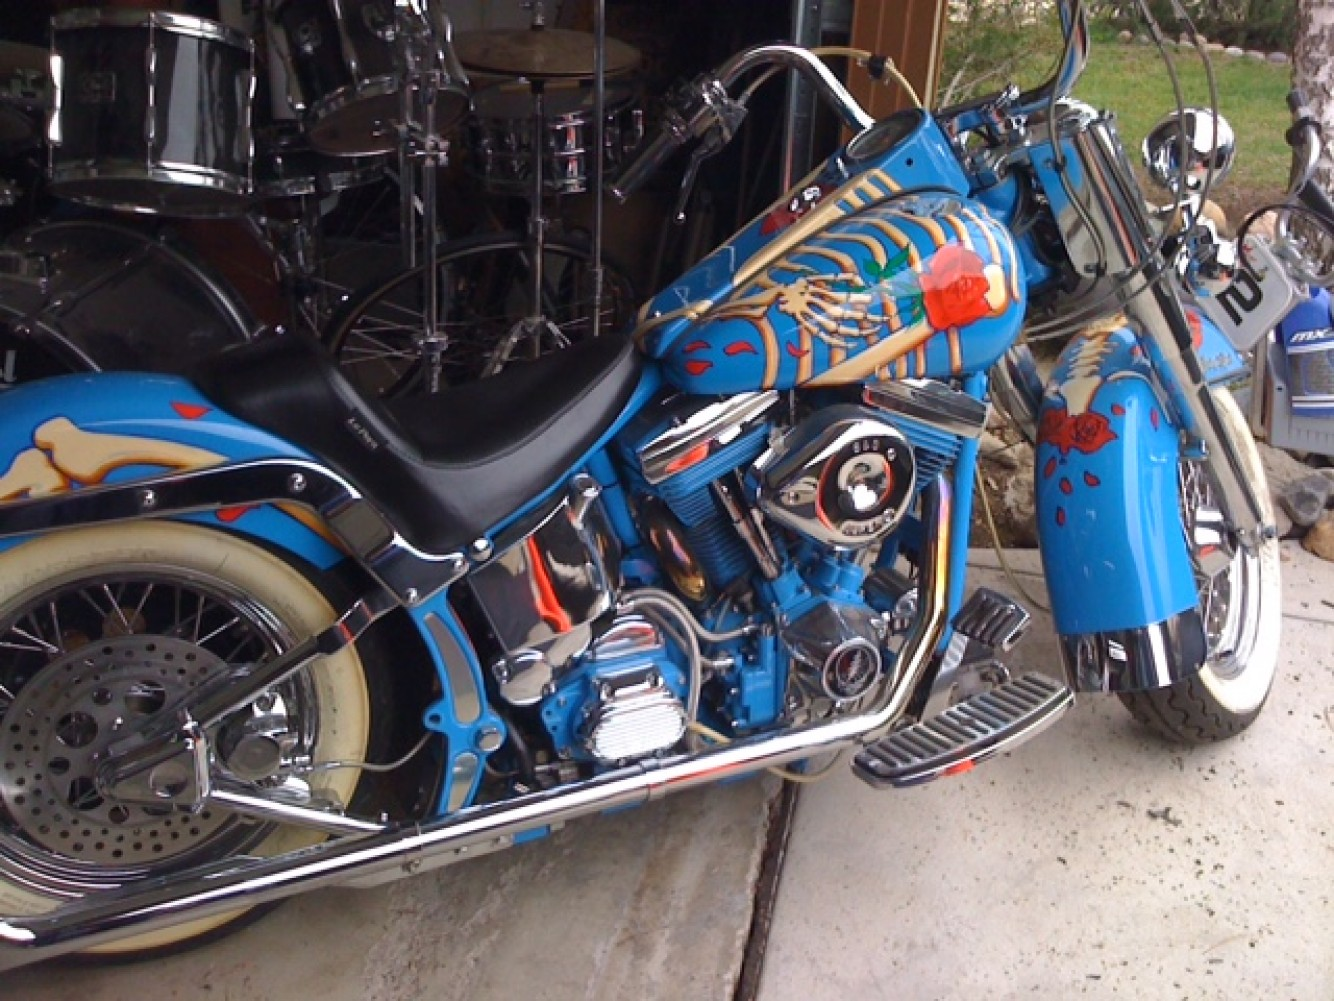 Harley Softail Motorcylce With Skeleton And Rose Grateful Dead Unique 24x48